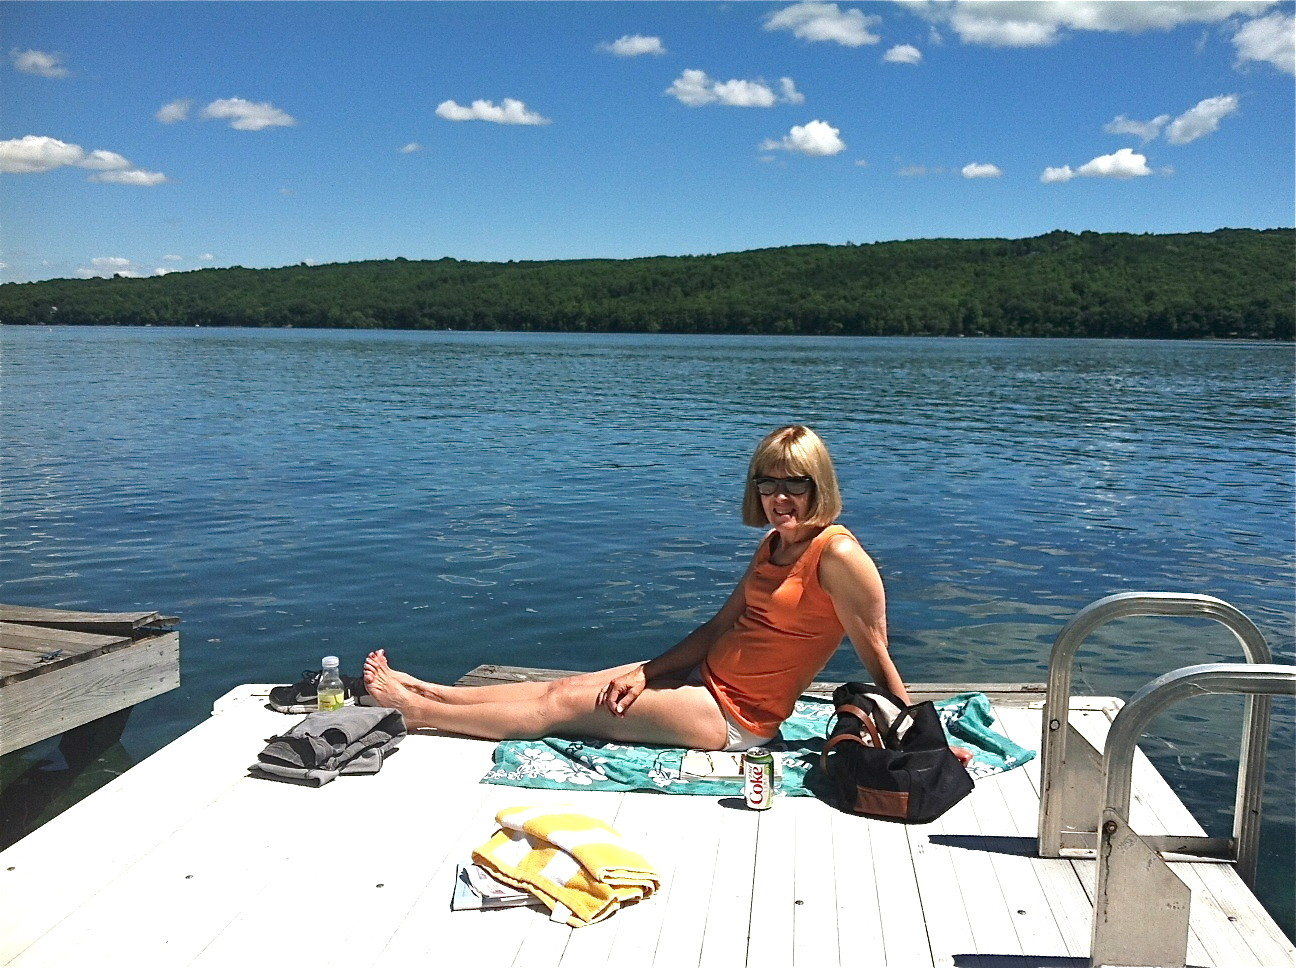 Nancy Hynes & Lorraine celebrate the Summer Solstice at Skaneateles Lake, June 21, 2014